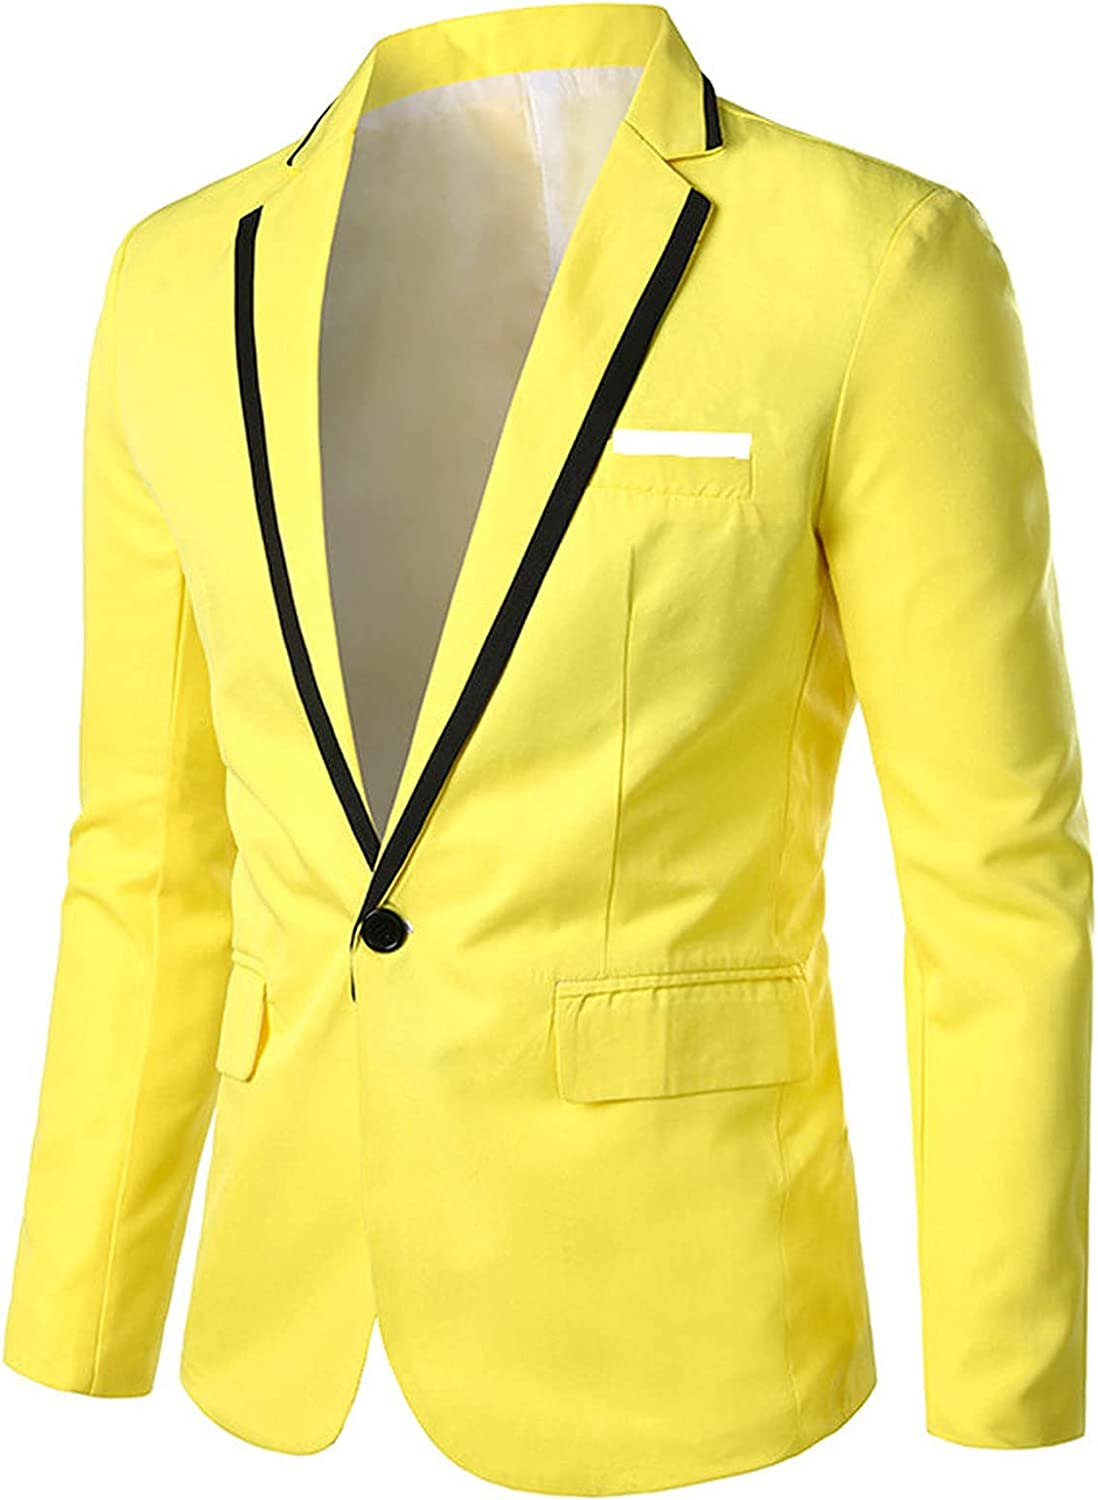 BUYYA Men's One-Button Slim Fit Blazer, Daily Casual Sports Jacket, Business Solid Color Top. Yellow